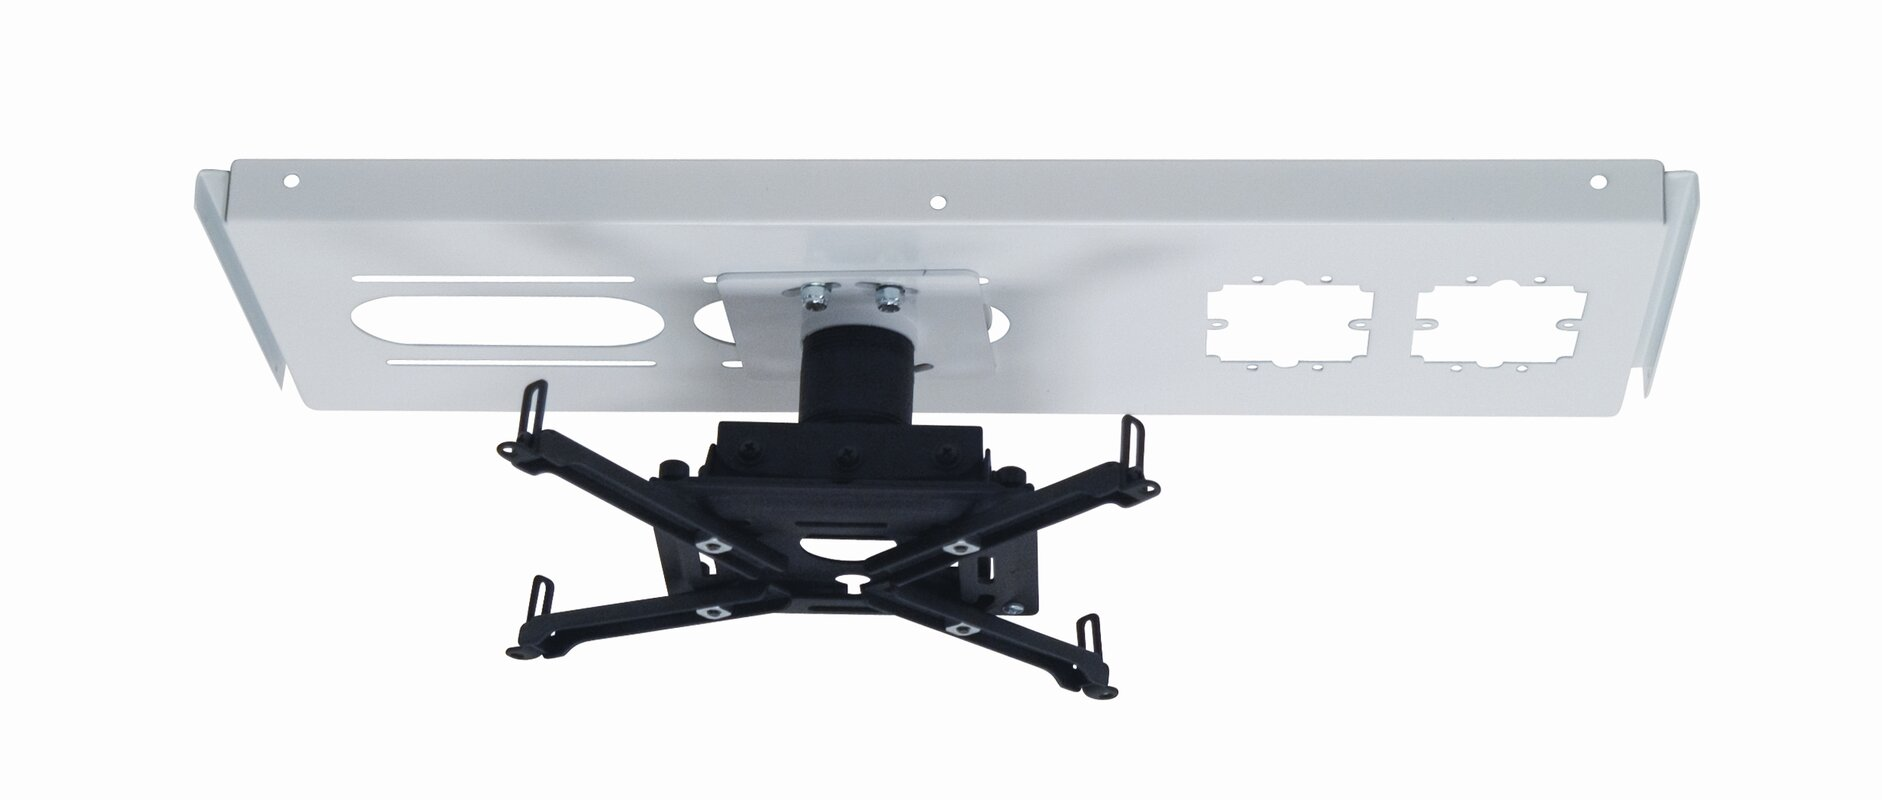 quatro have kit mount rid solutions products projector ceiling to rname it ceilings great mounts fix audipack s